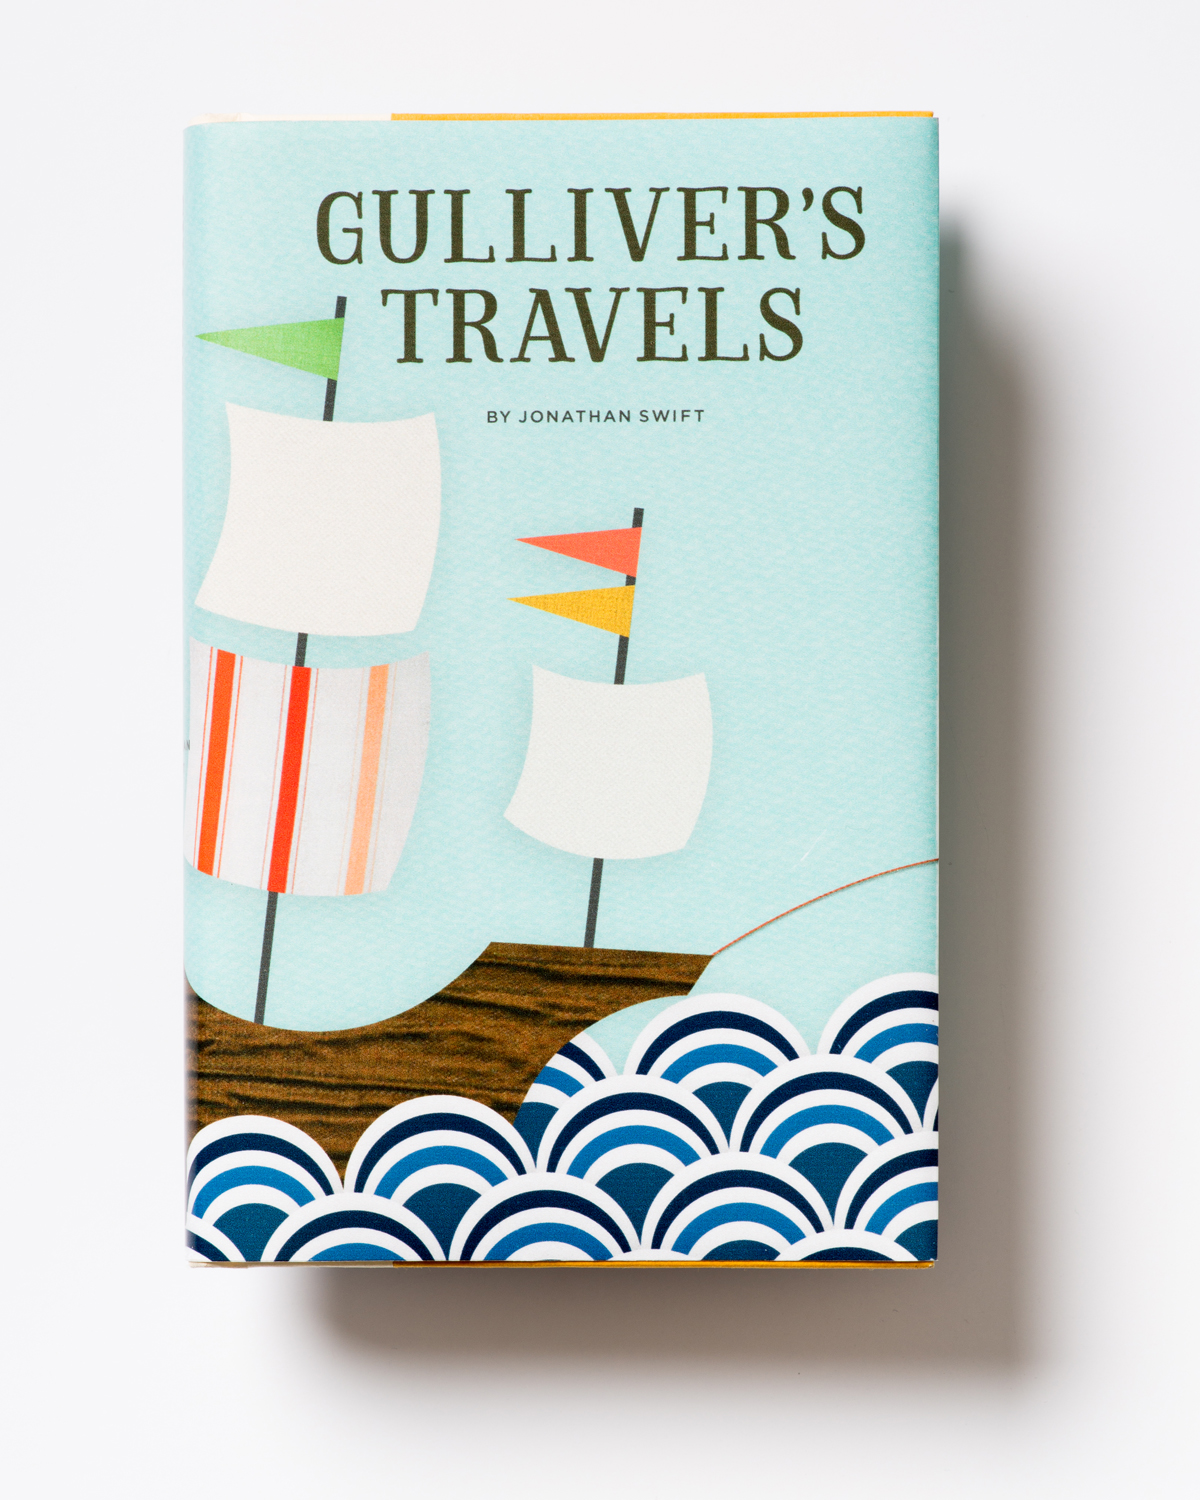 gullivers-front-lowres.jpg